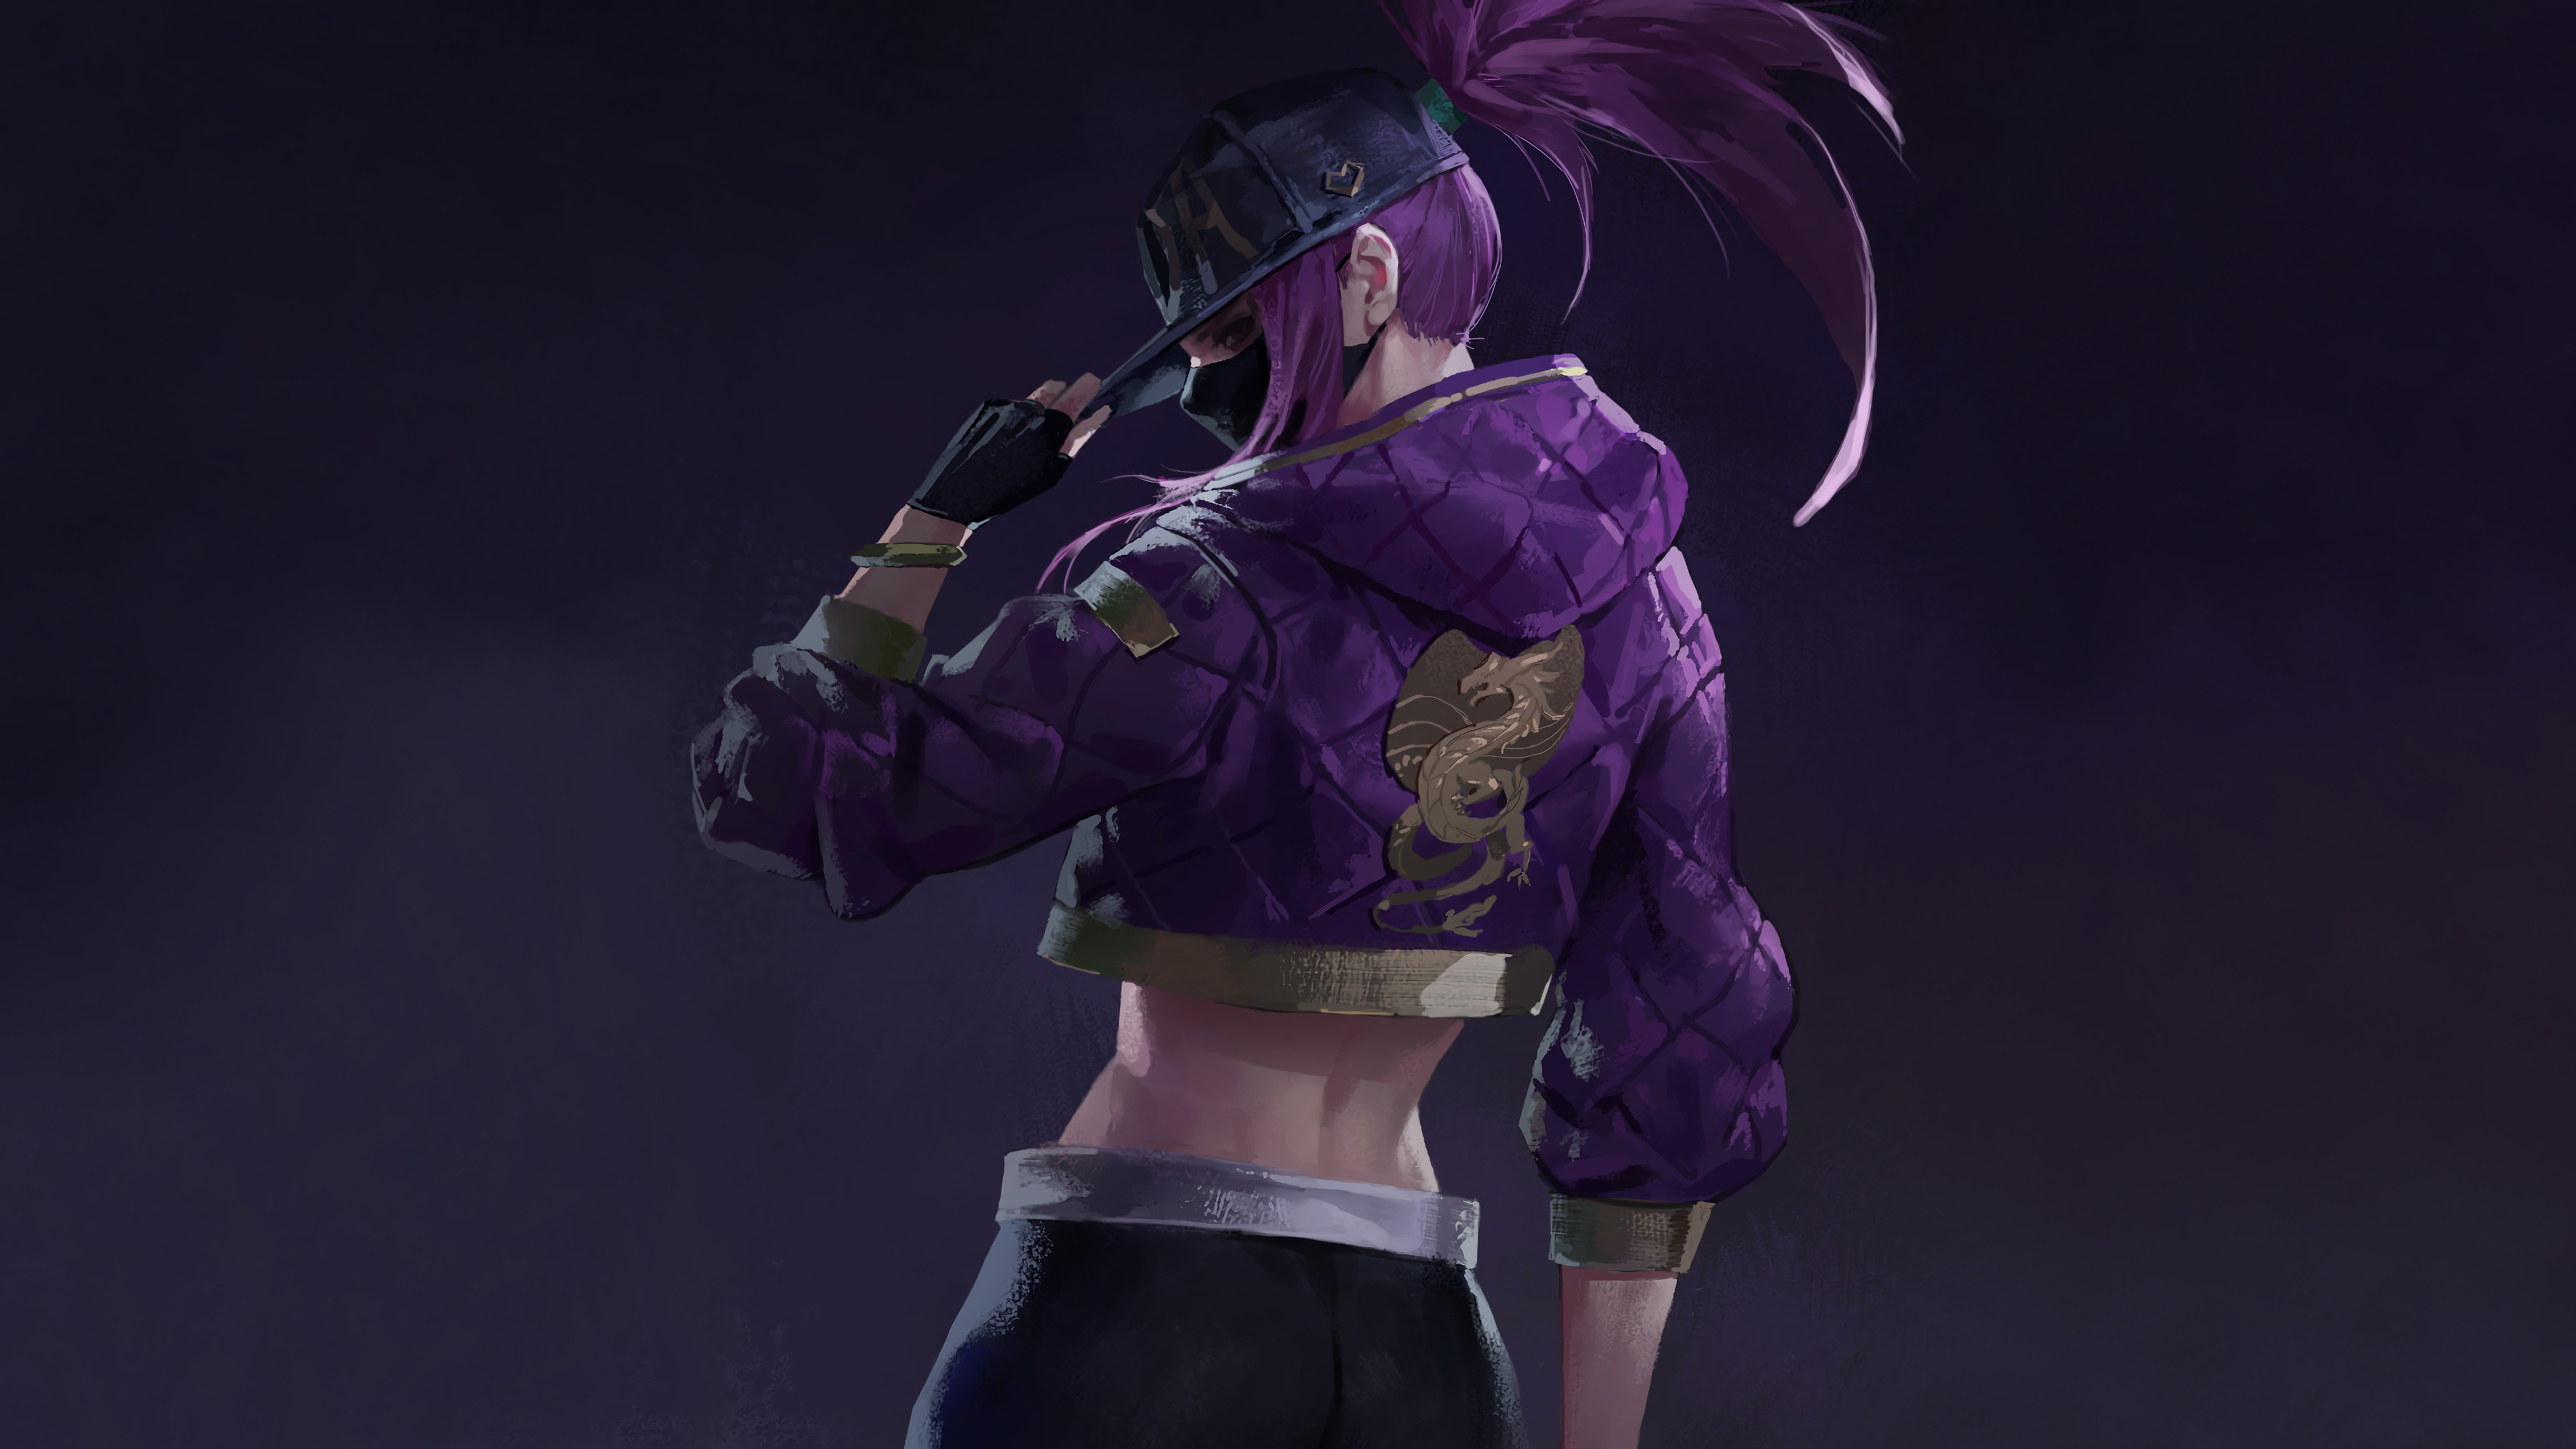 Kda Akali Lol Hd Games 4k Wallpapers Images Backgrounds Photos